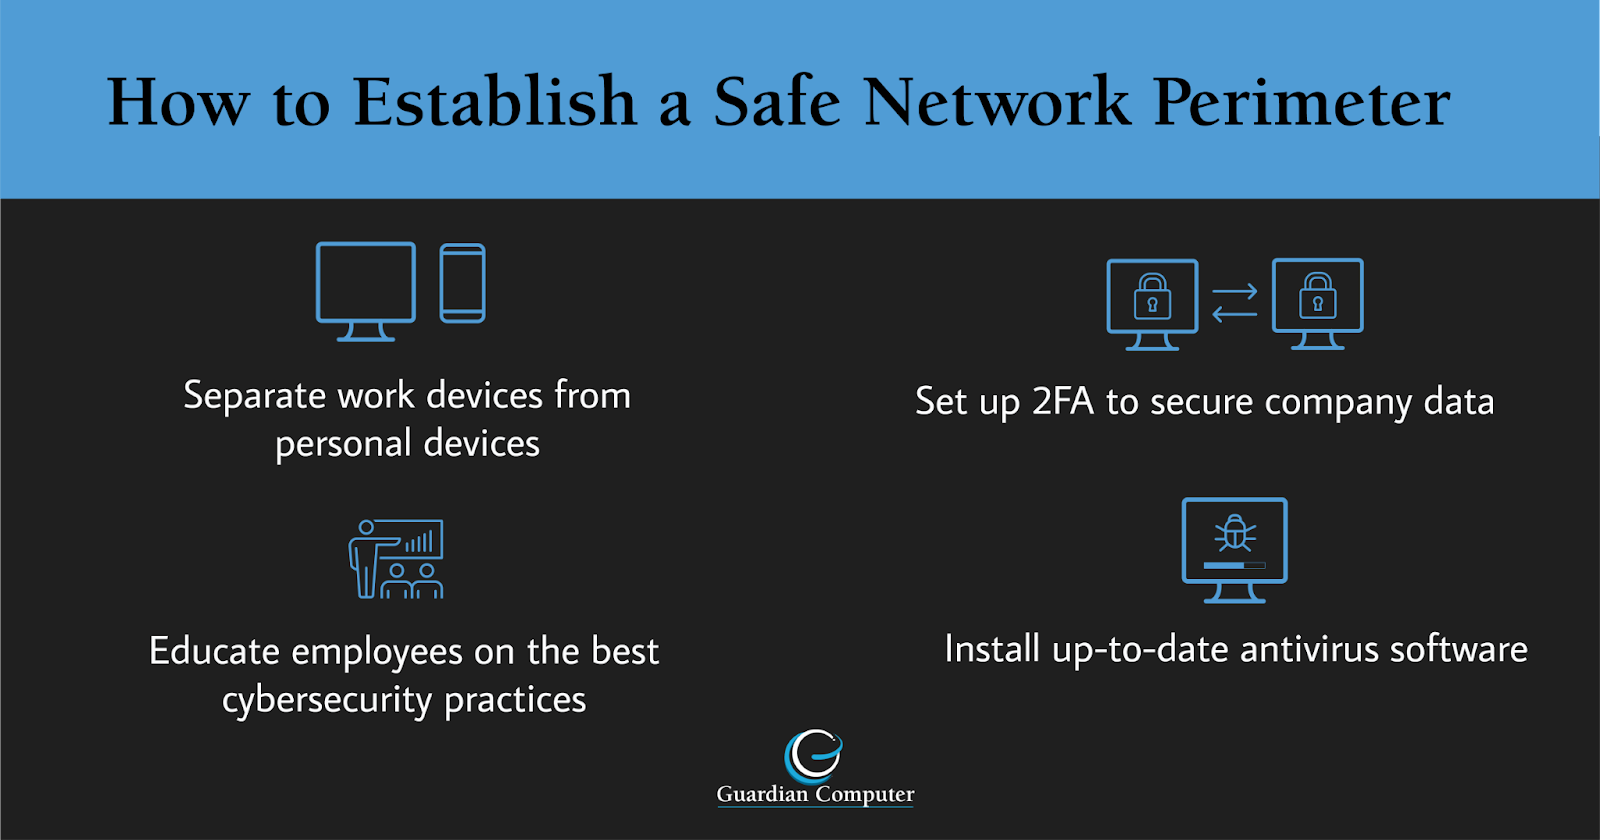 Despite the security assessment challenges in a distributed environment, one key piece of advice is to establish a safe network perimeter using the tips in this infographic and the rest of our blog post.